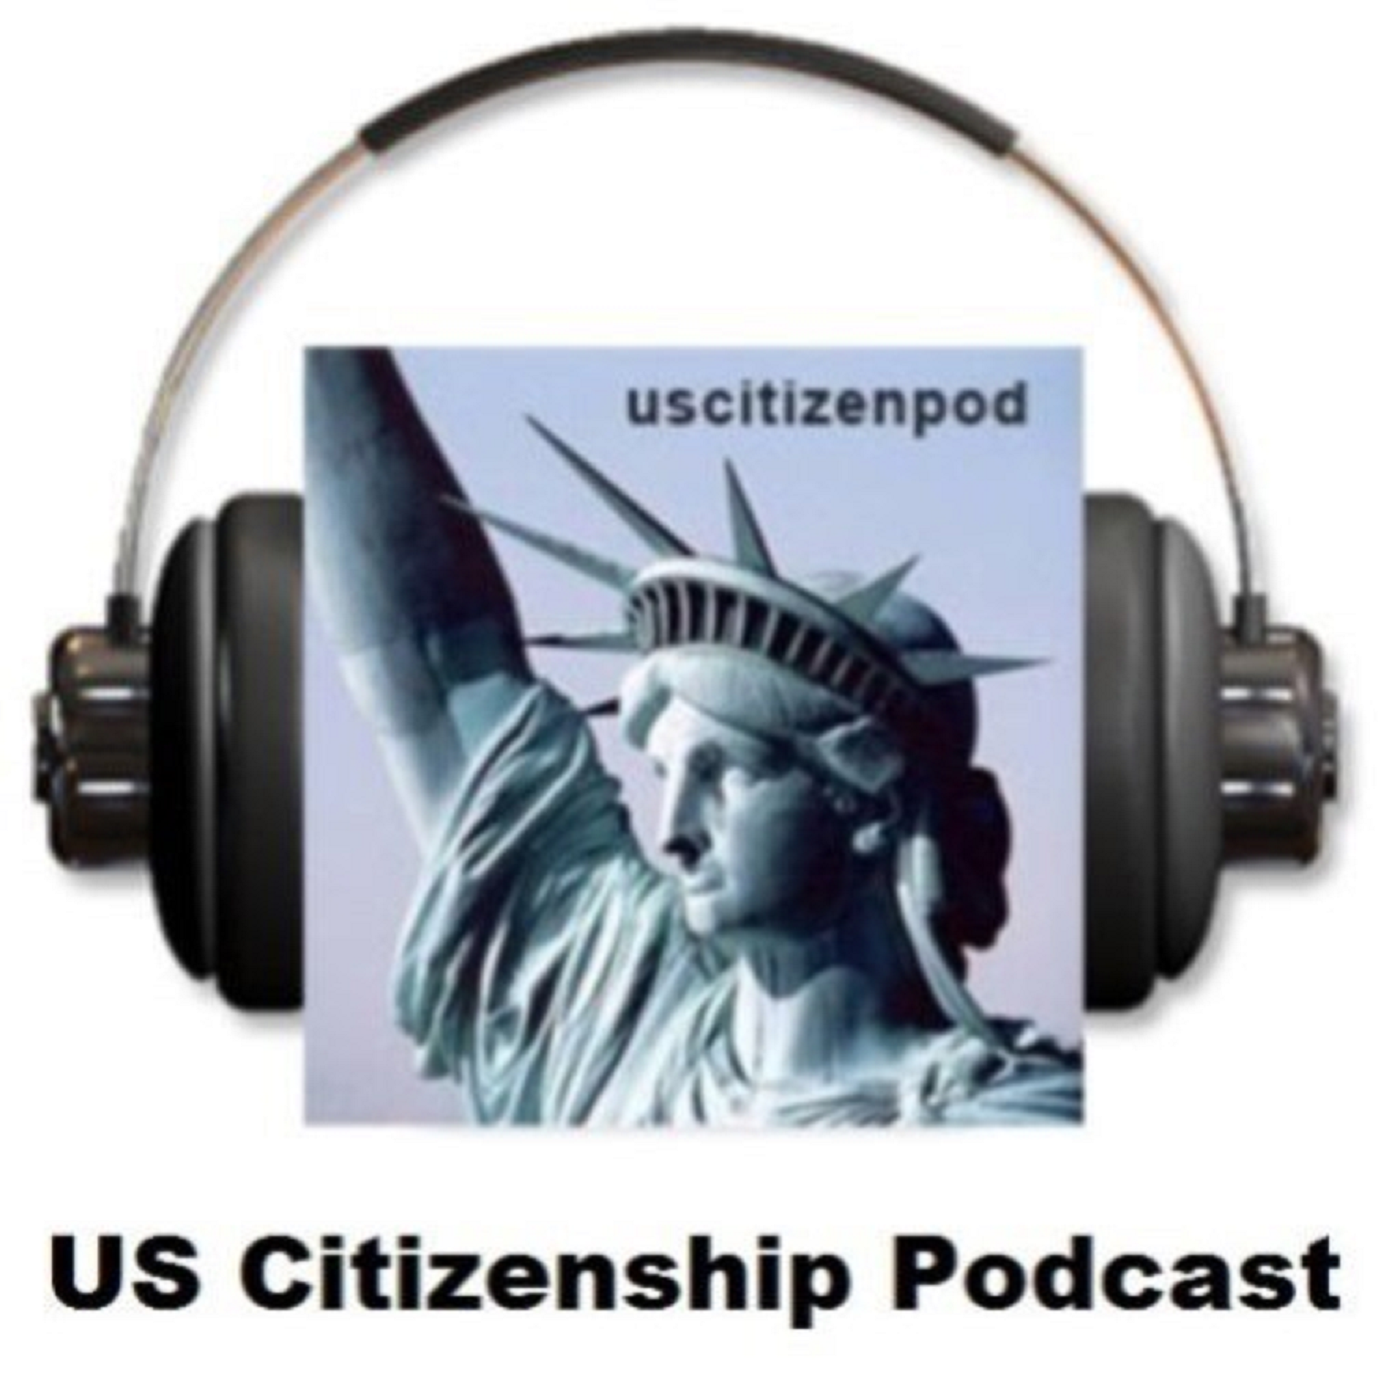 Artwork for 2016-05-17 Citizenship and Immigration News from US Citizenship Podcast